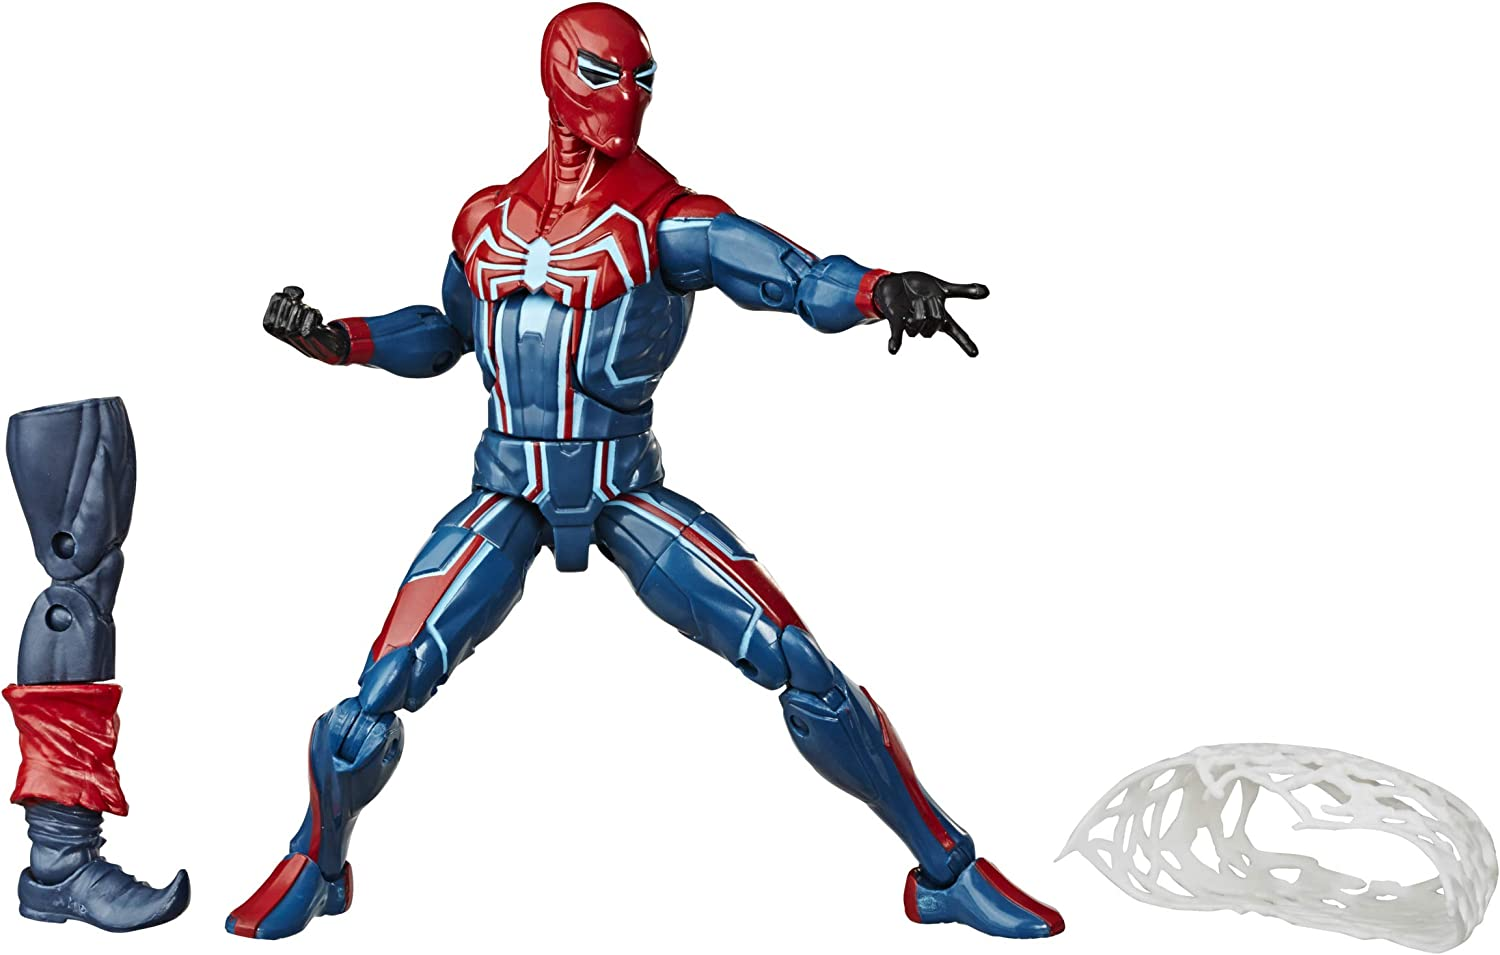 Spider-Man Hasbro Marvel Legends Series 6-inch Collectible Action Figure Velocity Sui